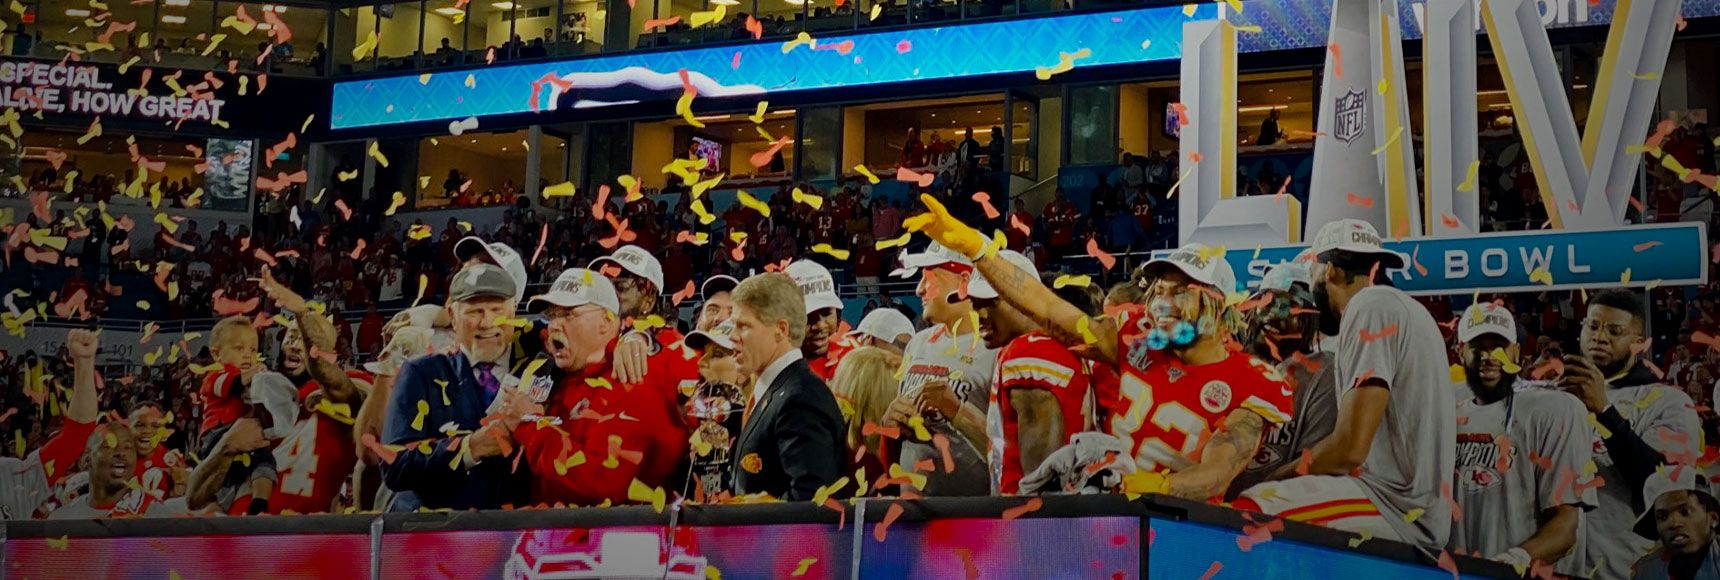 The Chiefs players and owners celebrating after winning the super bowl